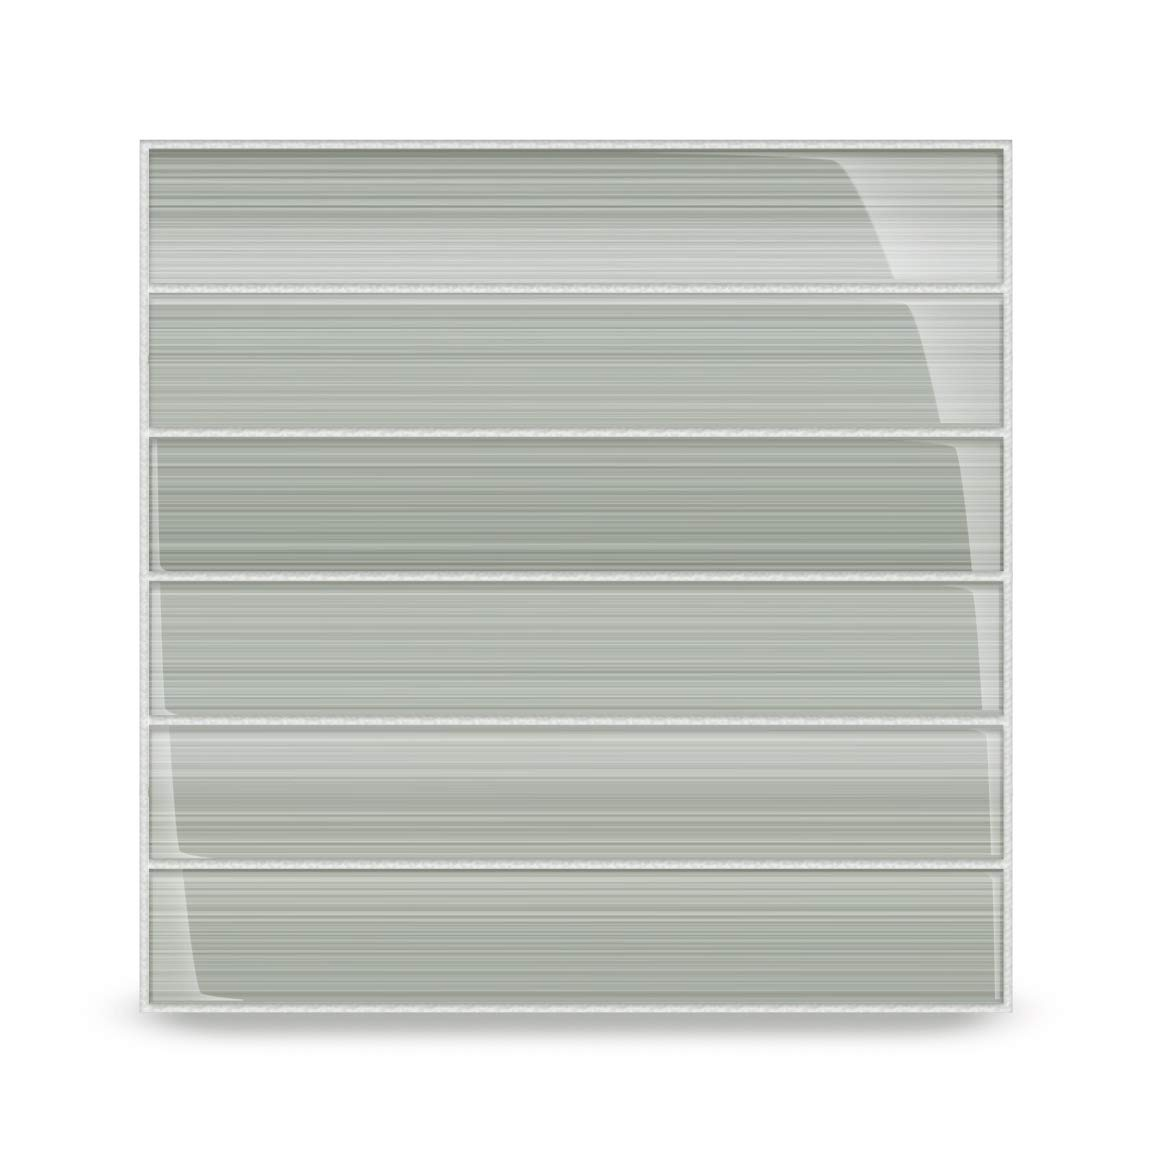 Stratus Perfect Gray Glass Tile. Hand Painted and Custom Made. Perfect for Bathrooms and Kitchens. 2x12